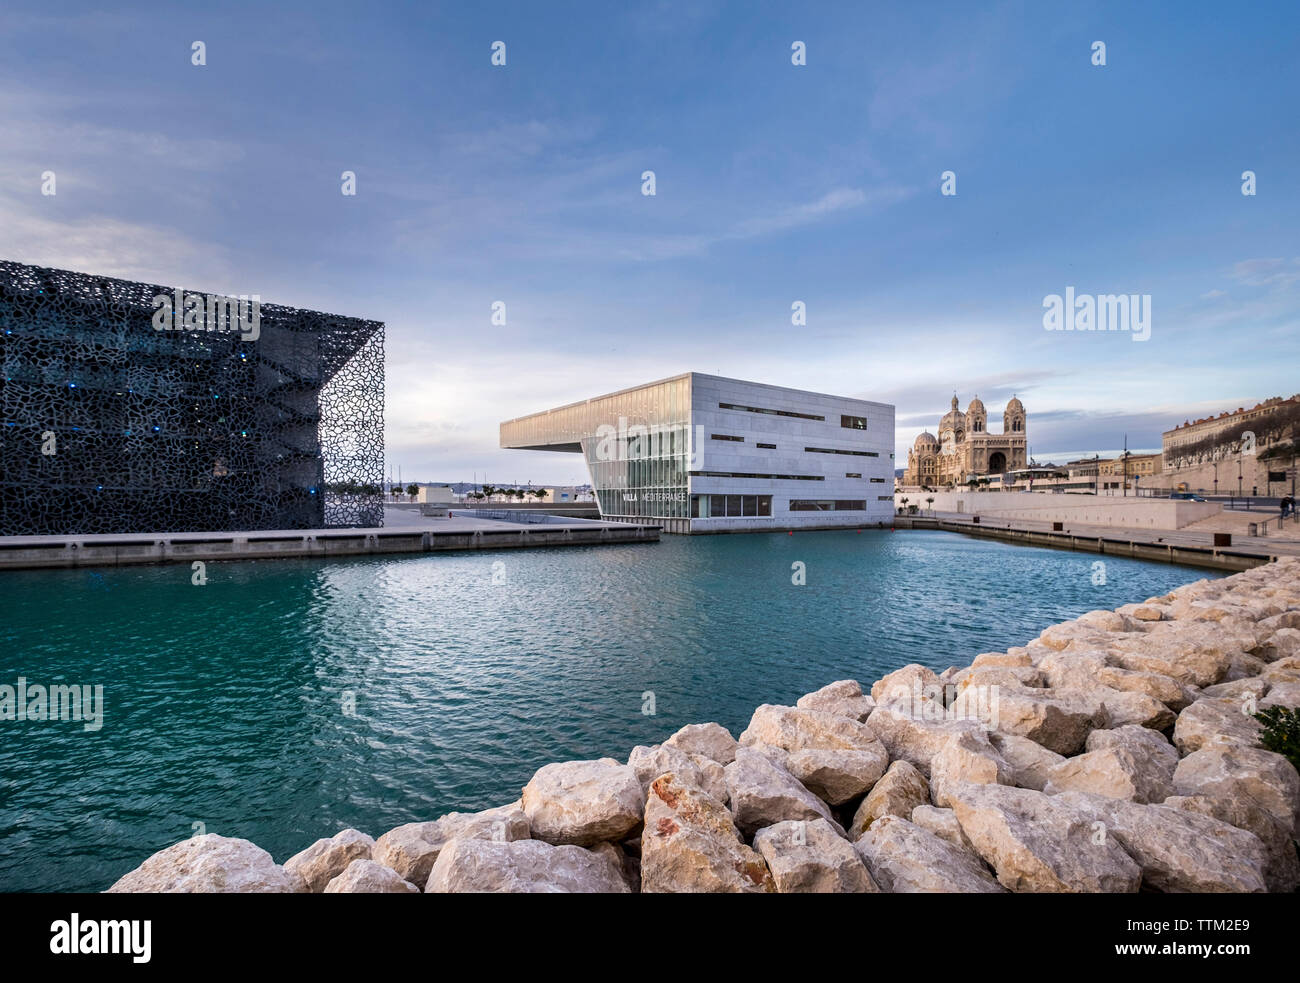 Villa Mediterranean with Museum of European and Mediterranean Civilisations and Marseille Cathedral in city against sky - Stock Image